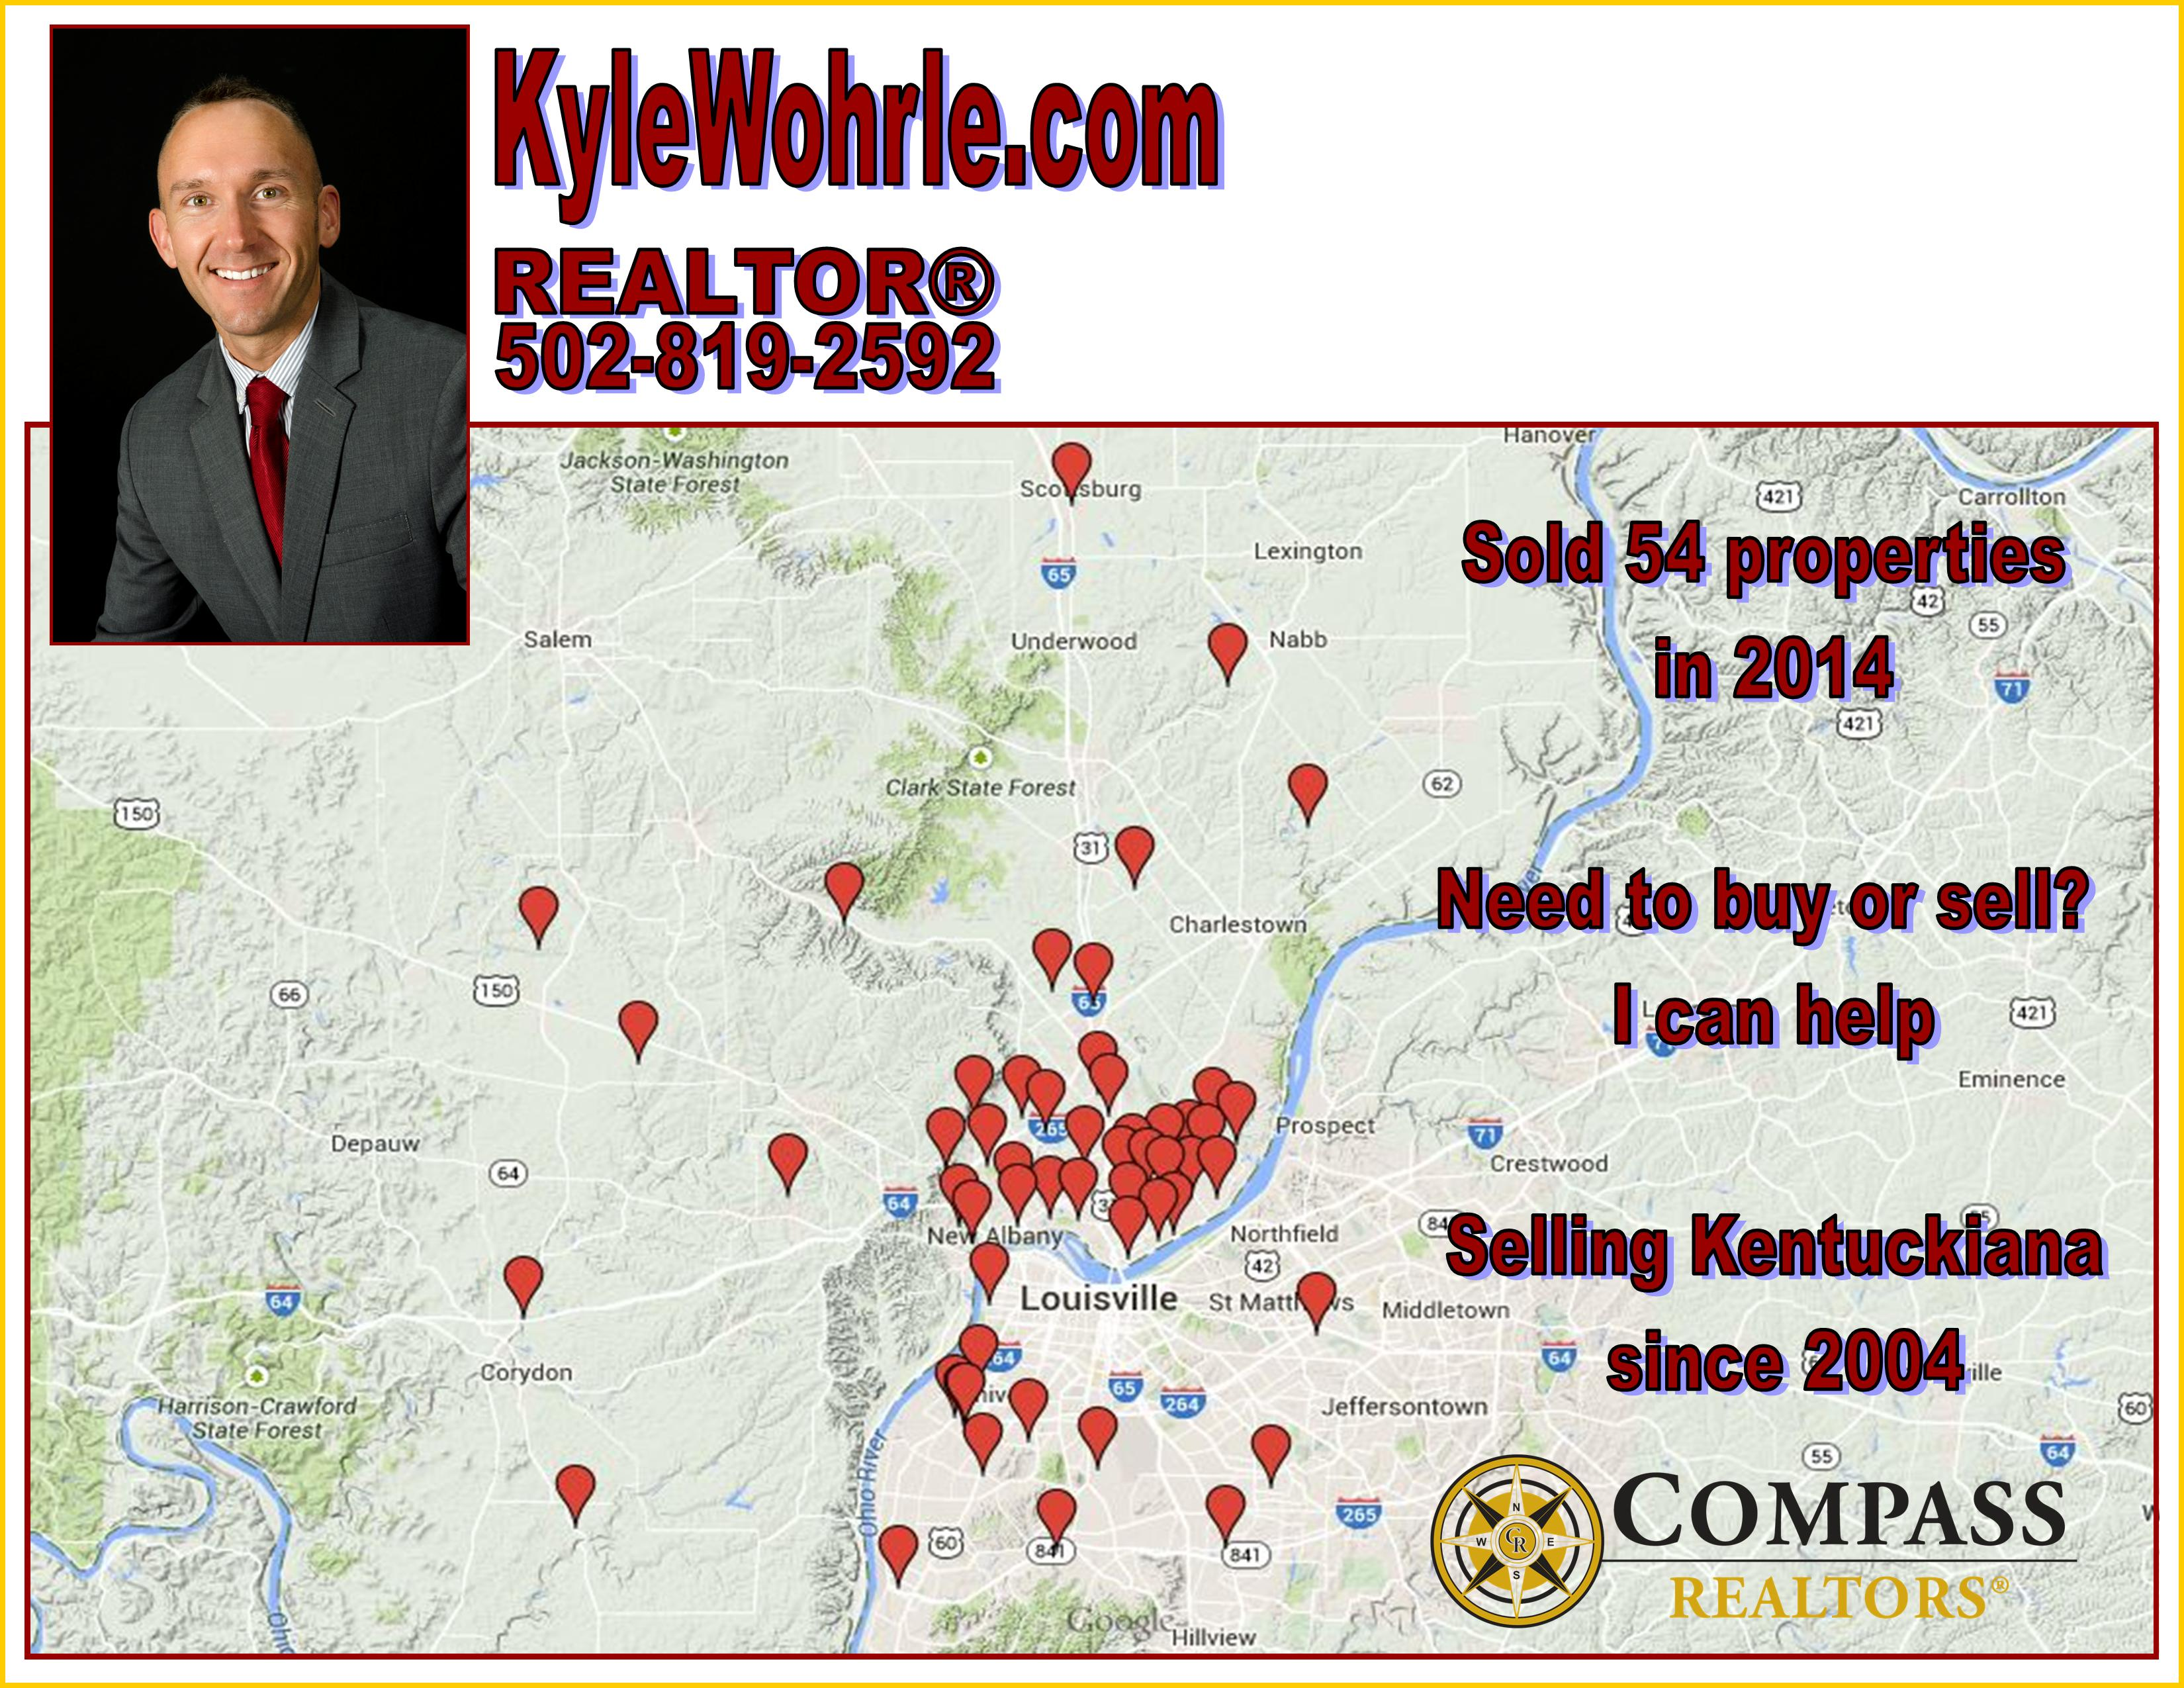 Kyle Wohrle 2014 Sales Map